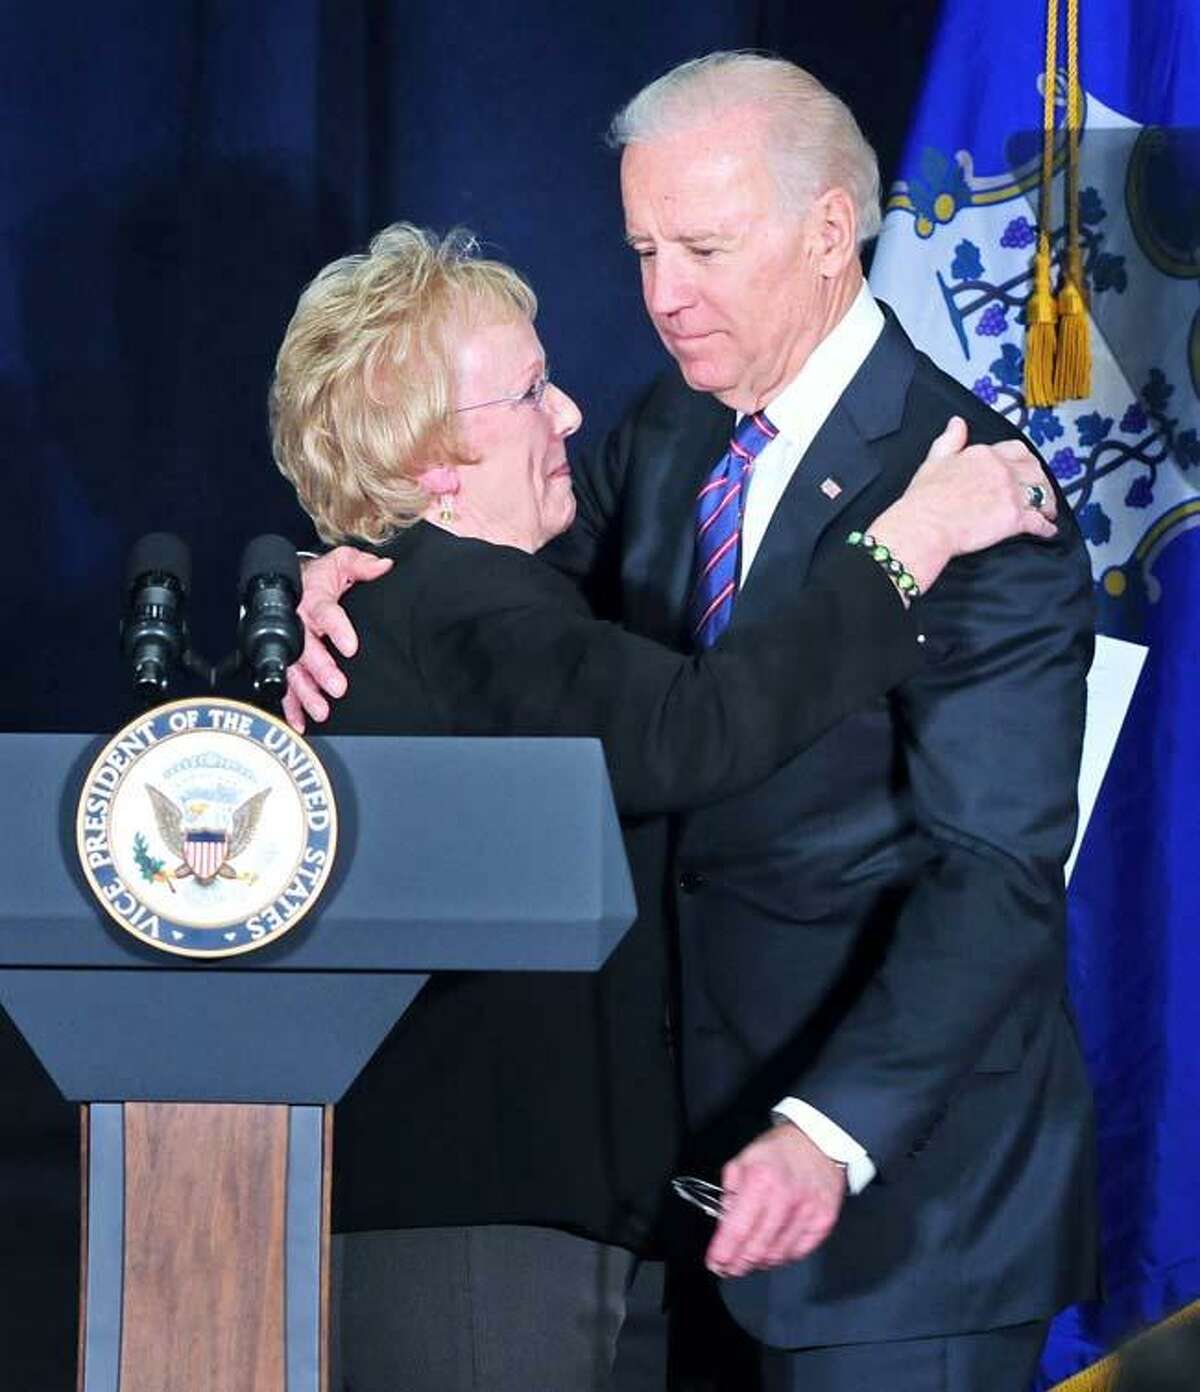 Newtown First Selectman E. Patricia Llodra (left) embraces Vice President Joe Biden (right) before he speaks at a Conference on Gun Violence at the Campus Center Ballroom at Western Connecticut State University in Danbury on 2/21/2013.Photo by Arnold Gold/New Haven Register